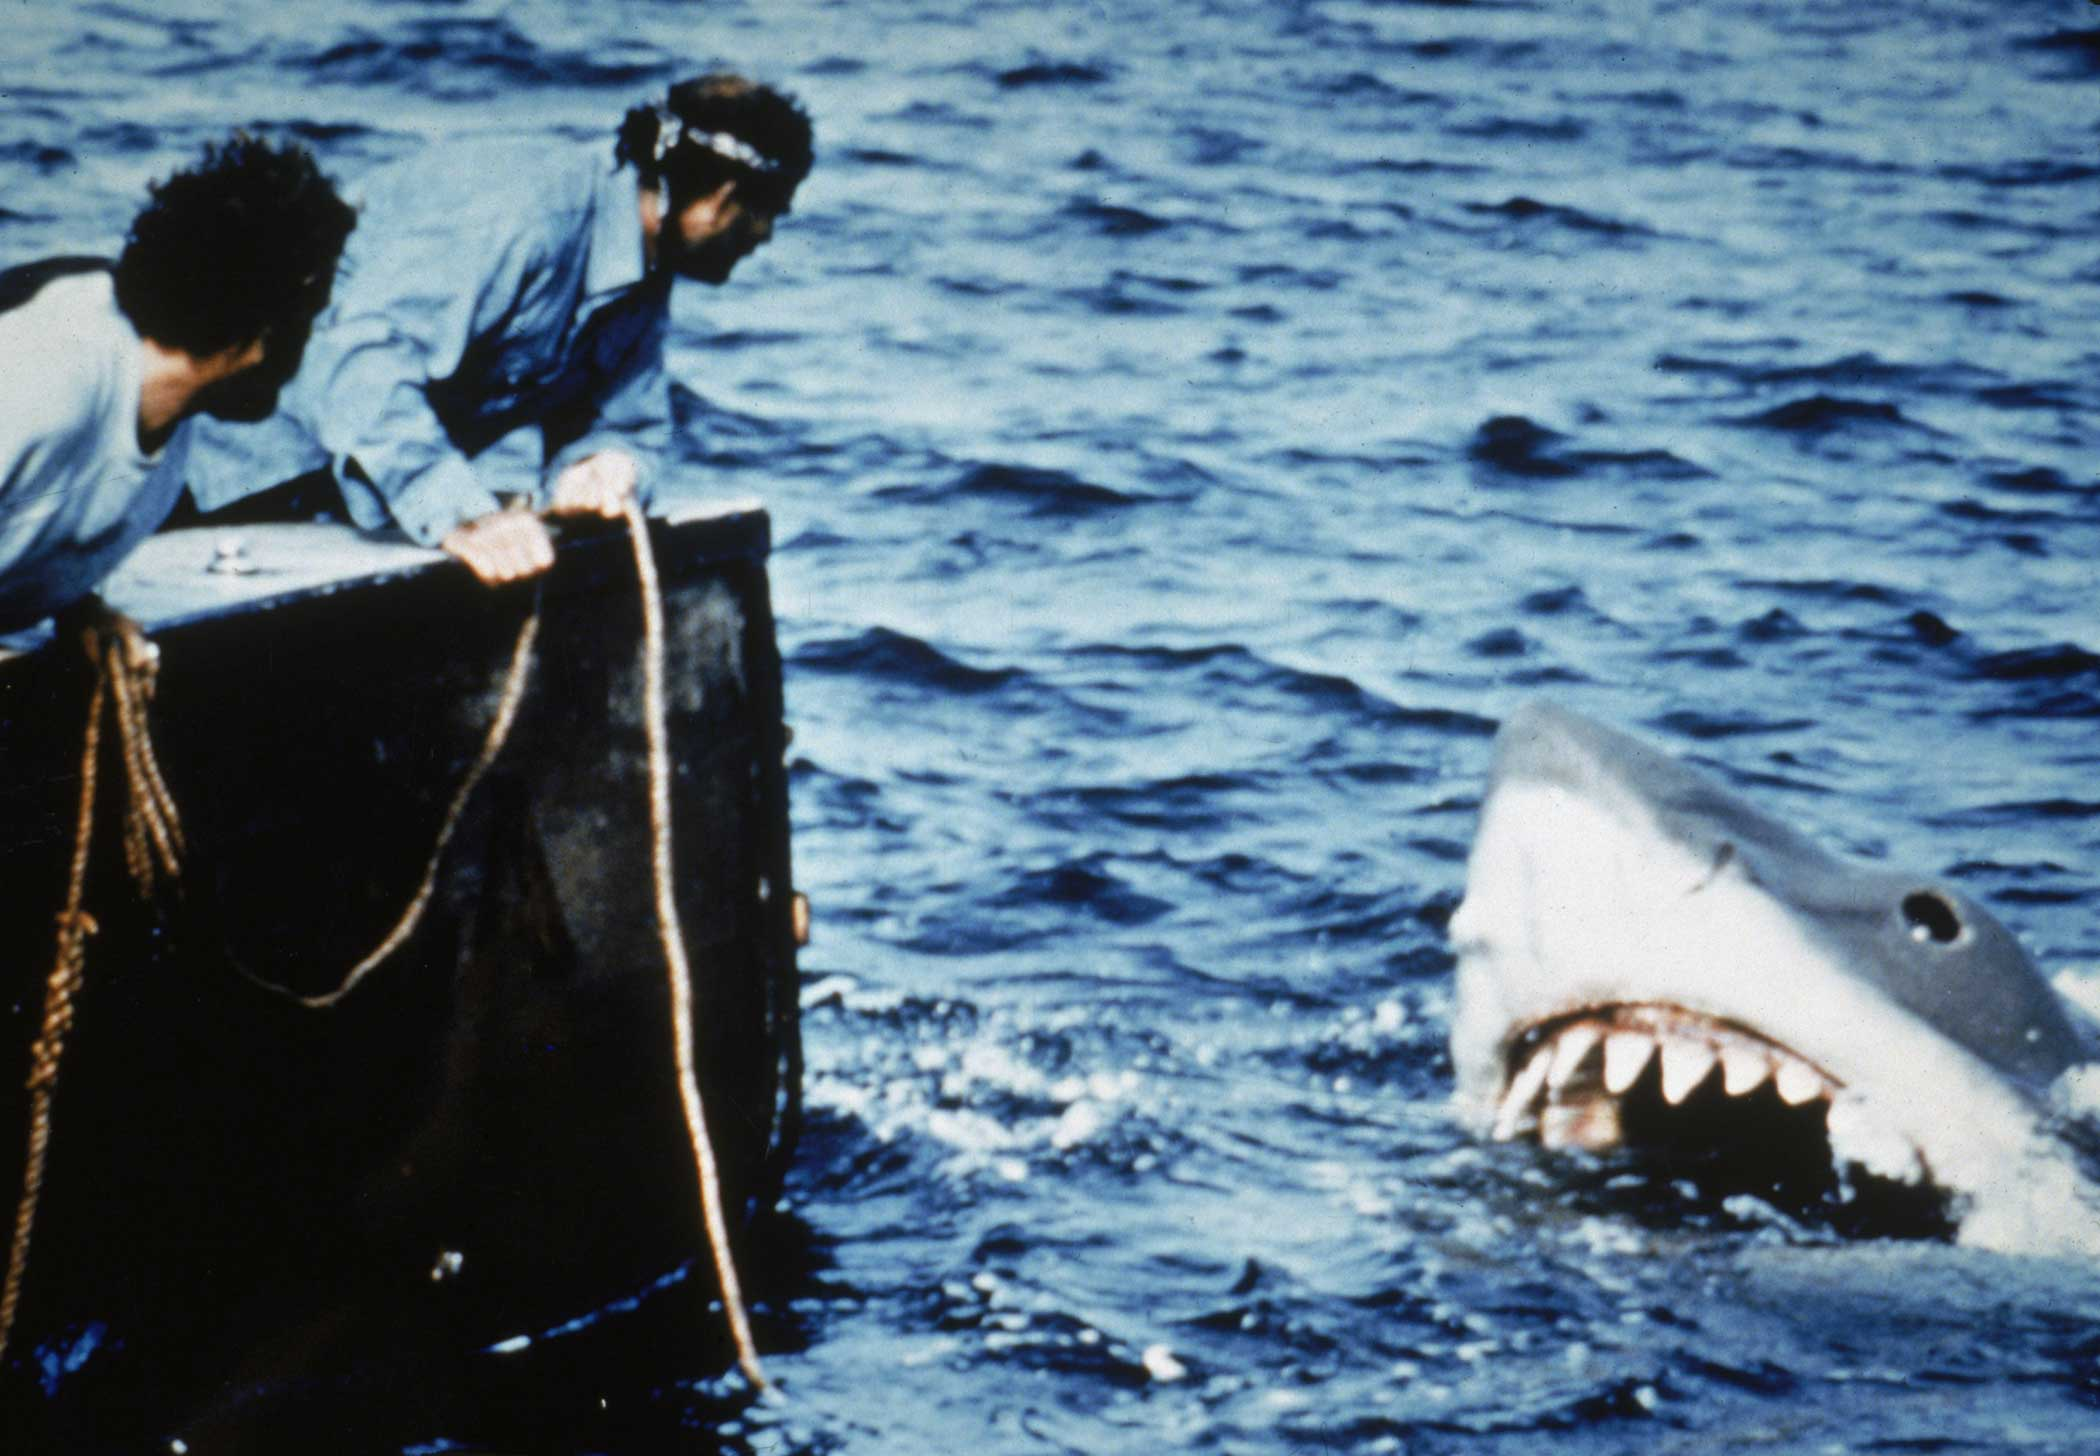 Jaws from Jaws, 1975.